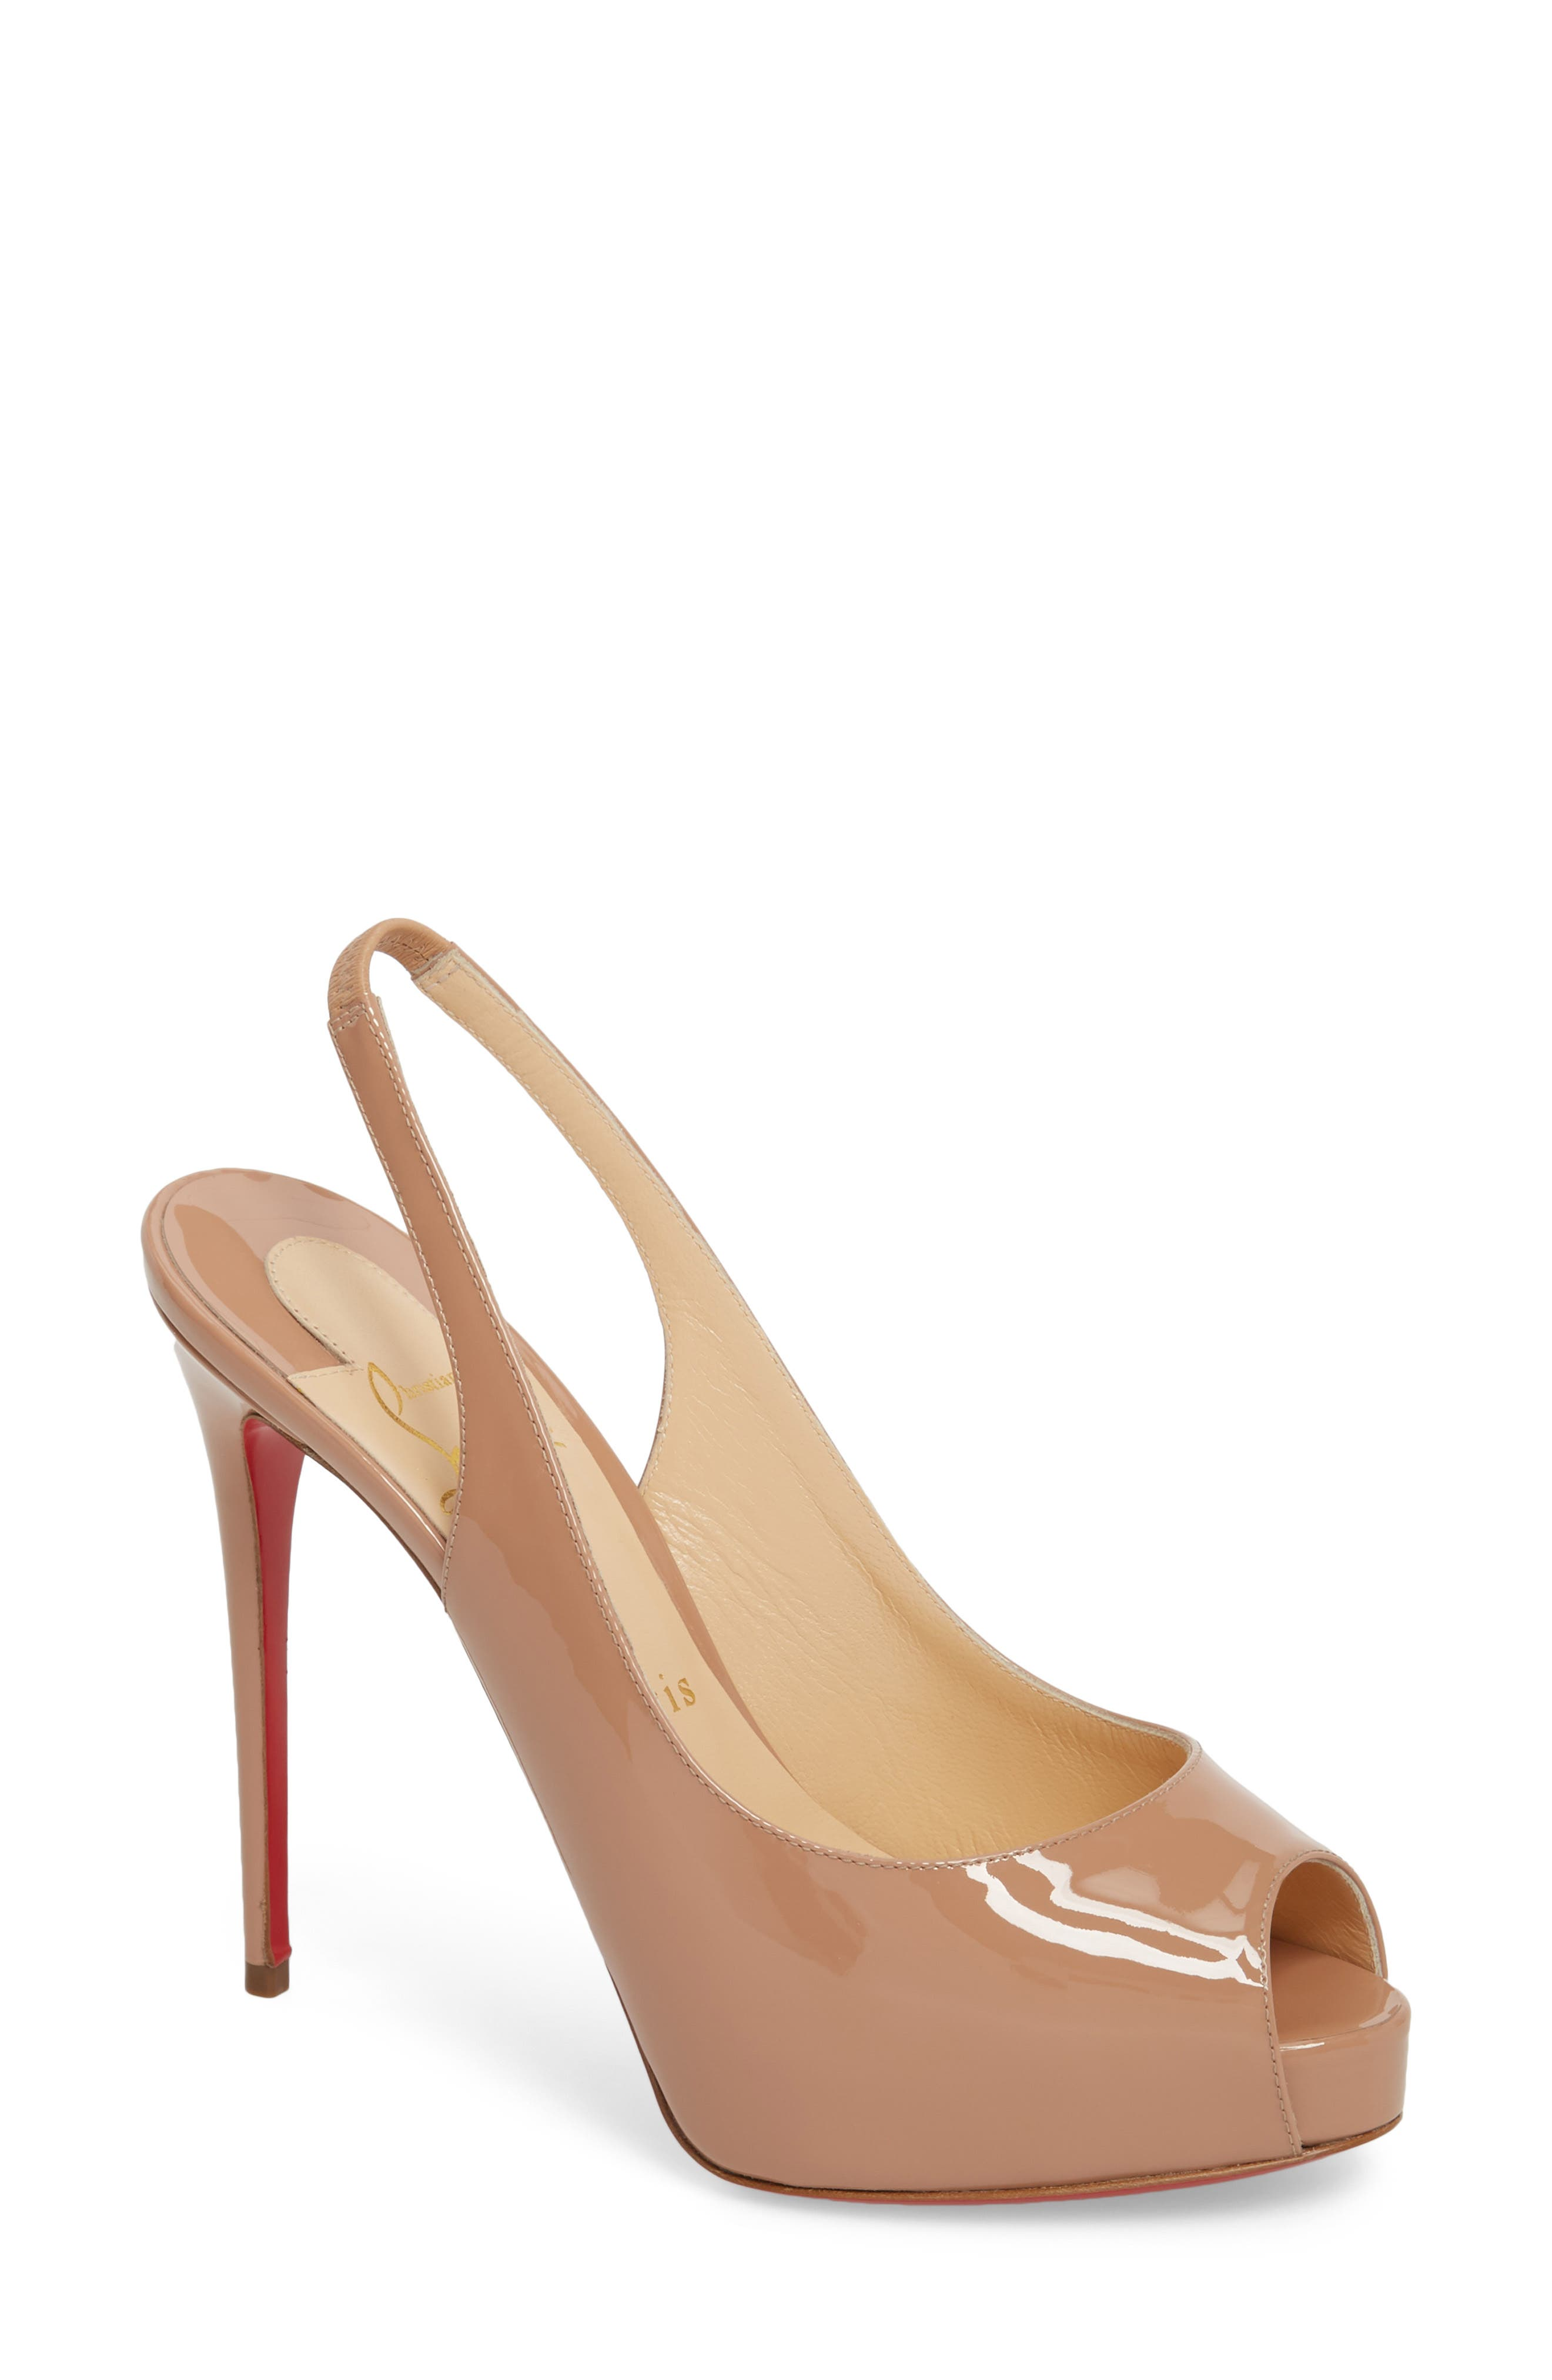 Private Number Peep Toe Pump,                             Main thumbnail 1, color,                             Nude